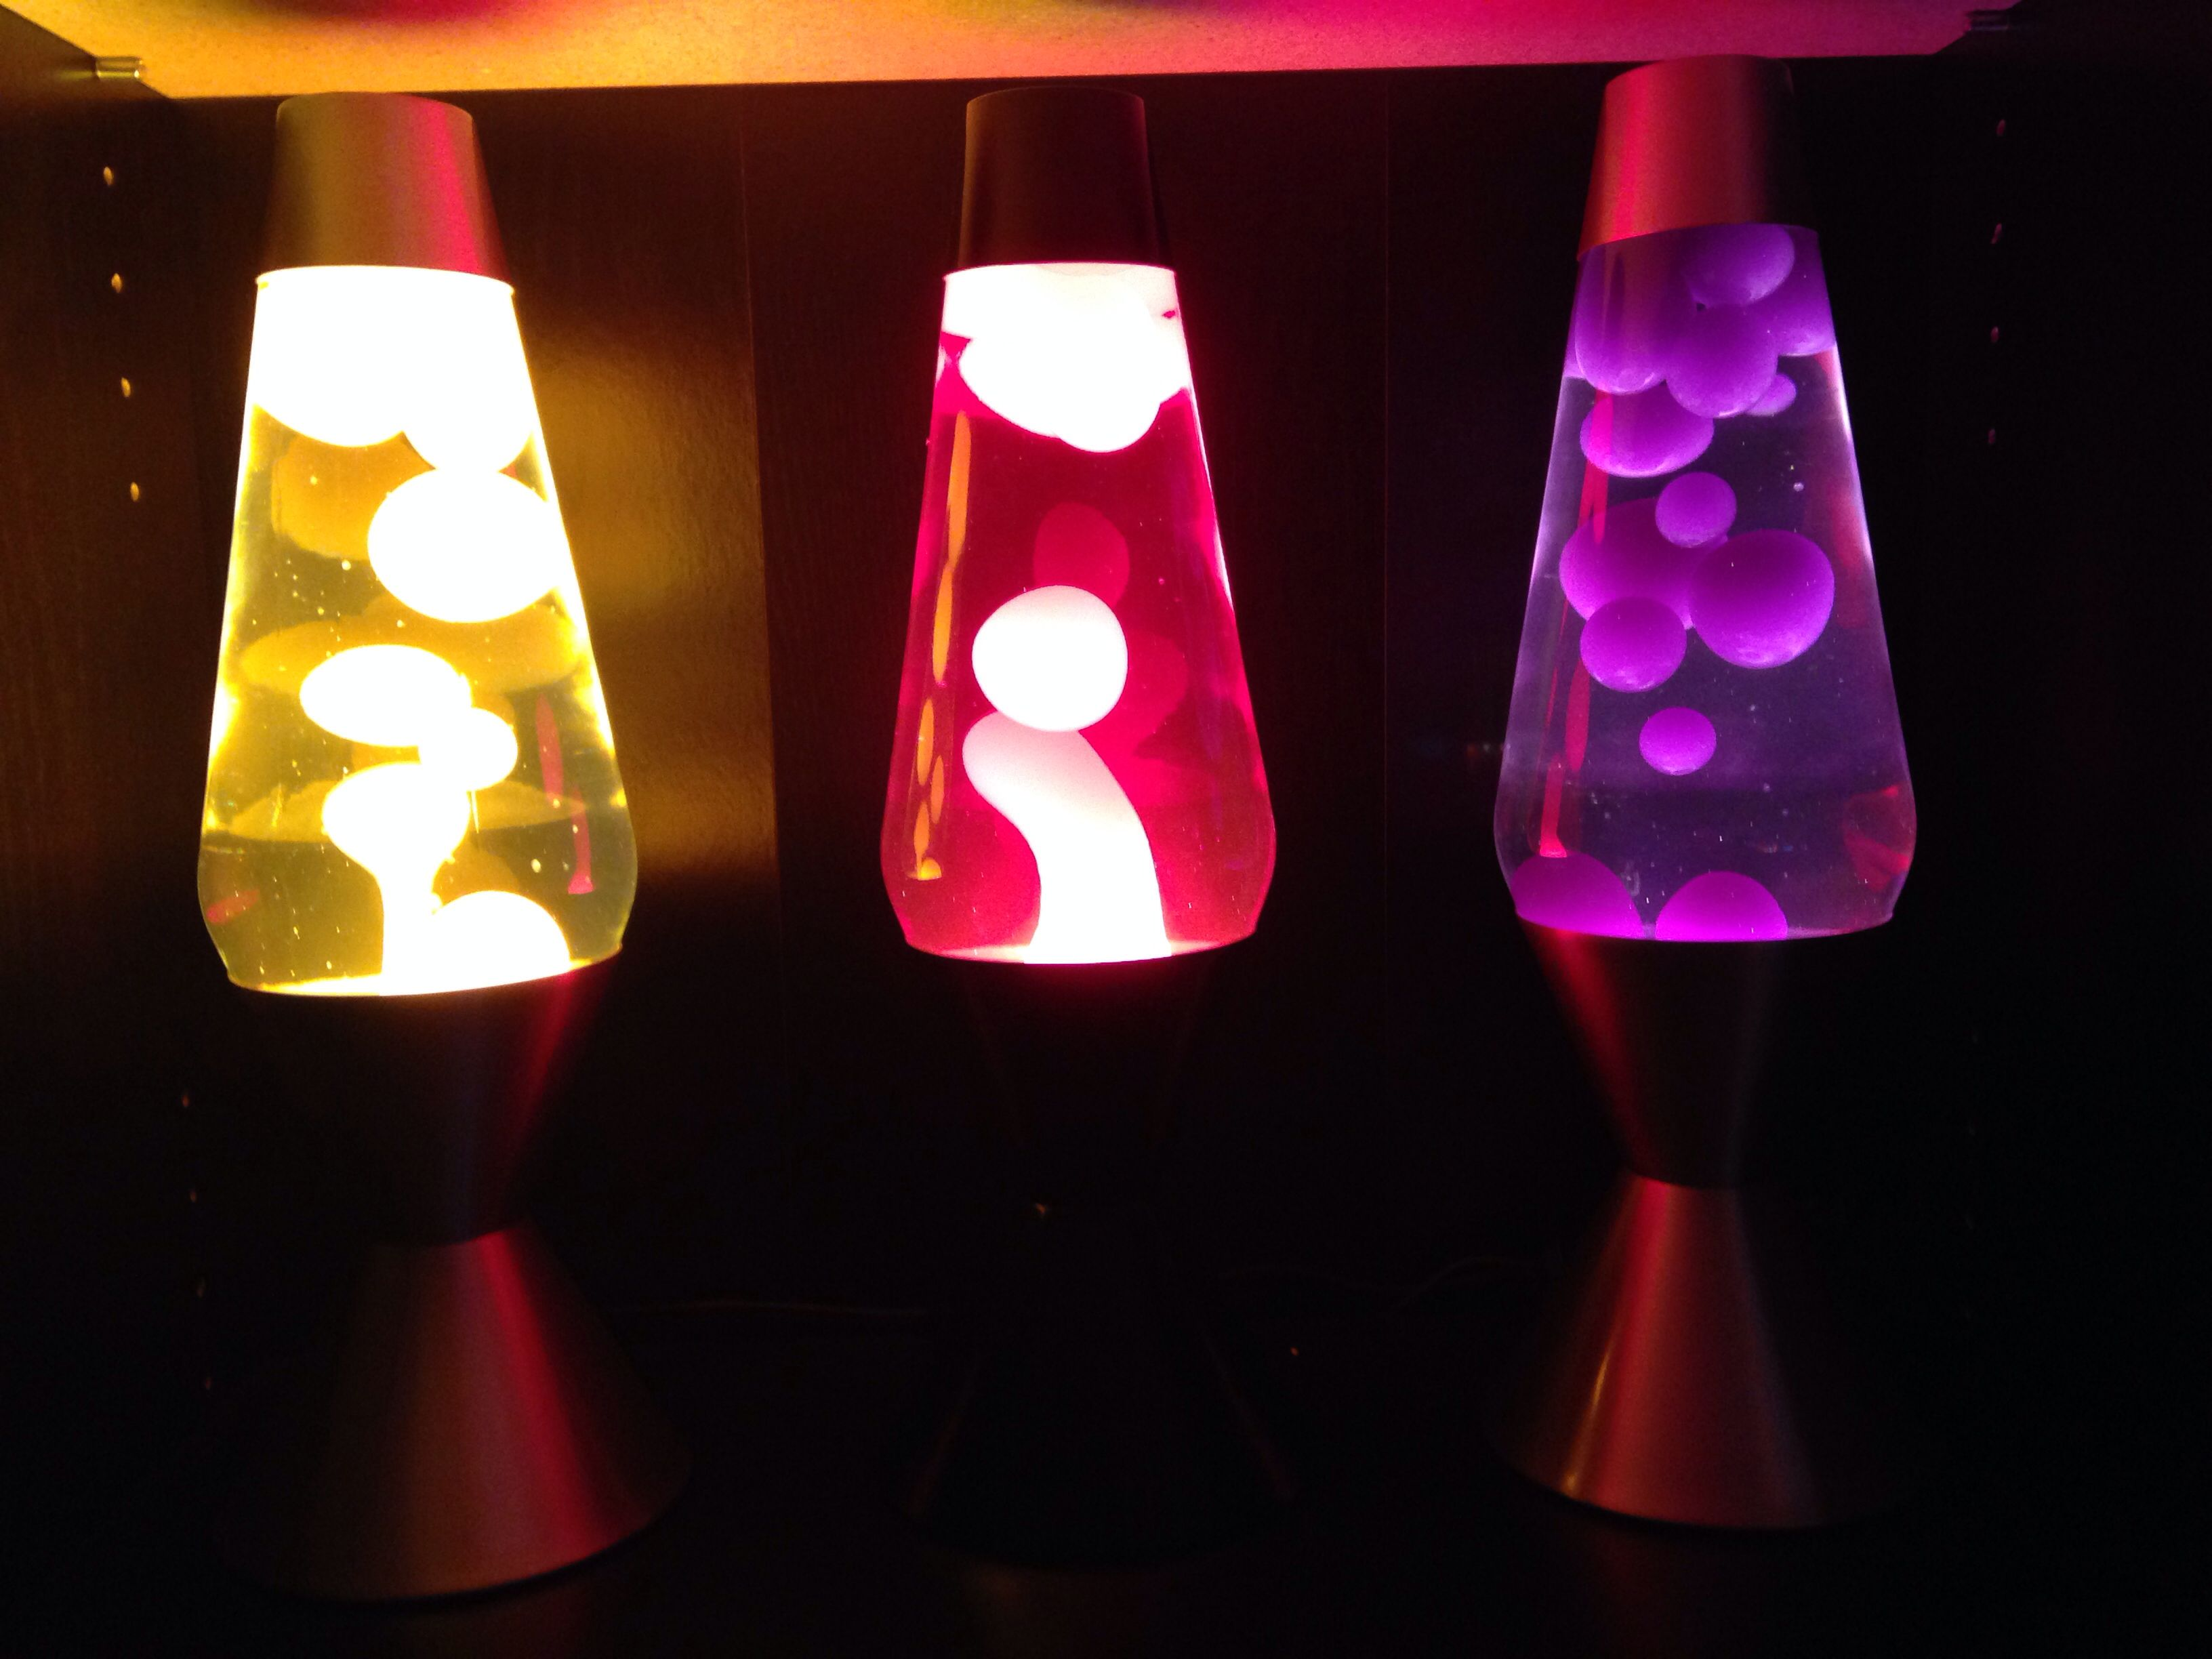 Lava lamp near me - Three Sixteen Inch Lava Lamps From Left To Right Clear Liquid Yellow Wax